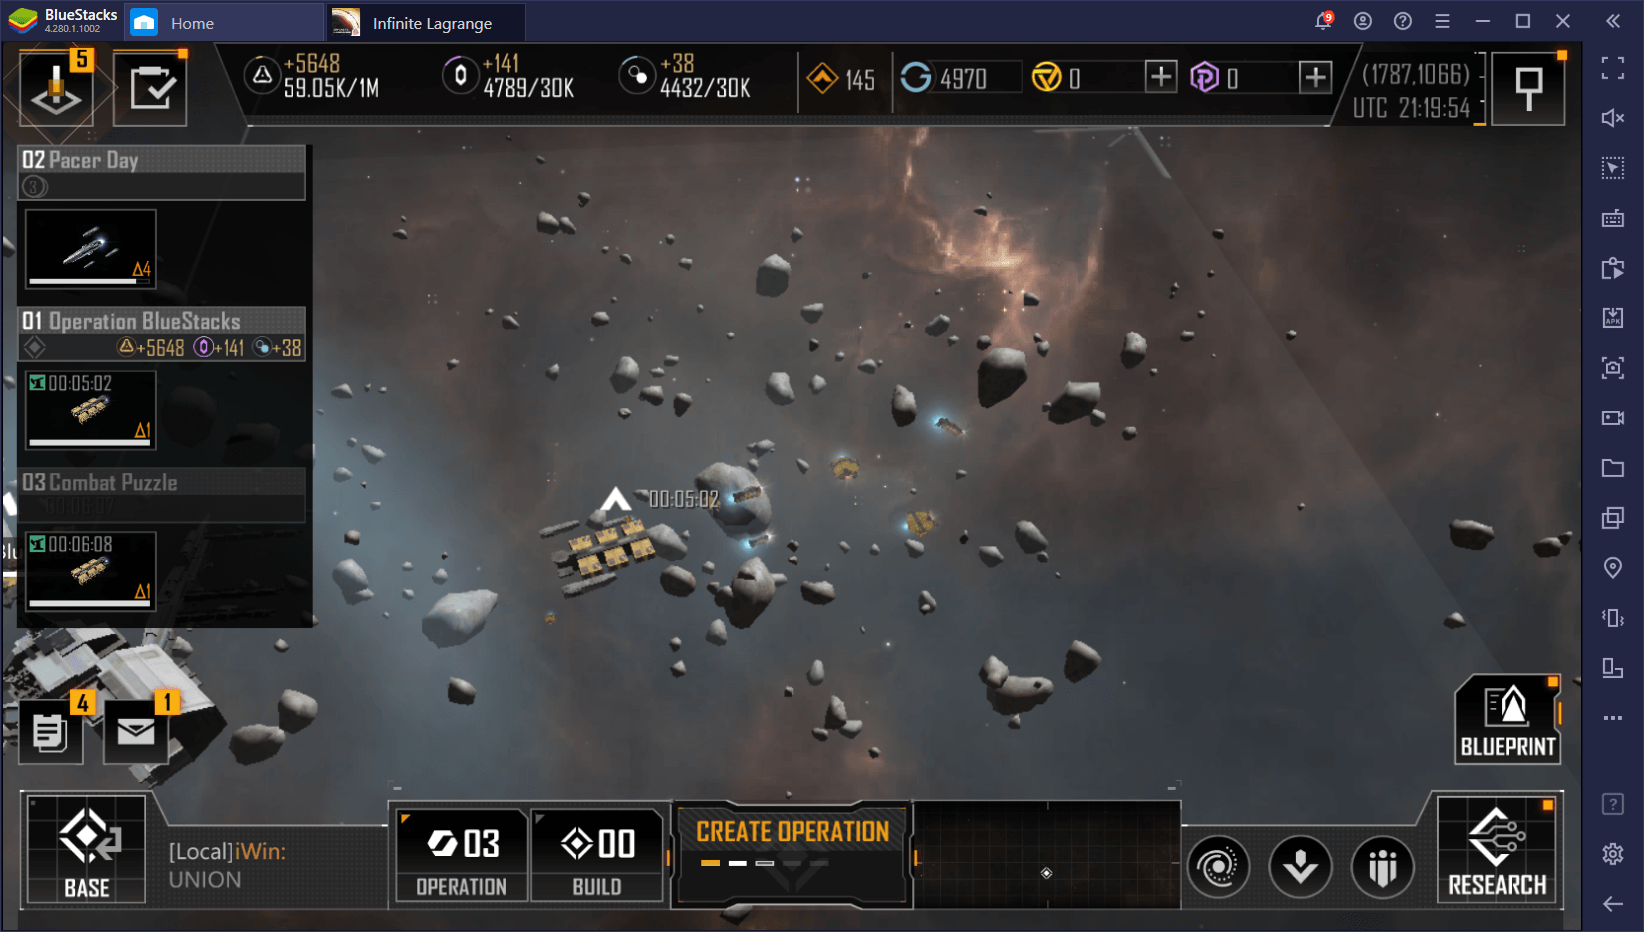 Beginner's Guide for Infinite Lagrange – The Basics of Space Colonization and Exploration